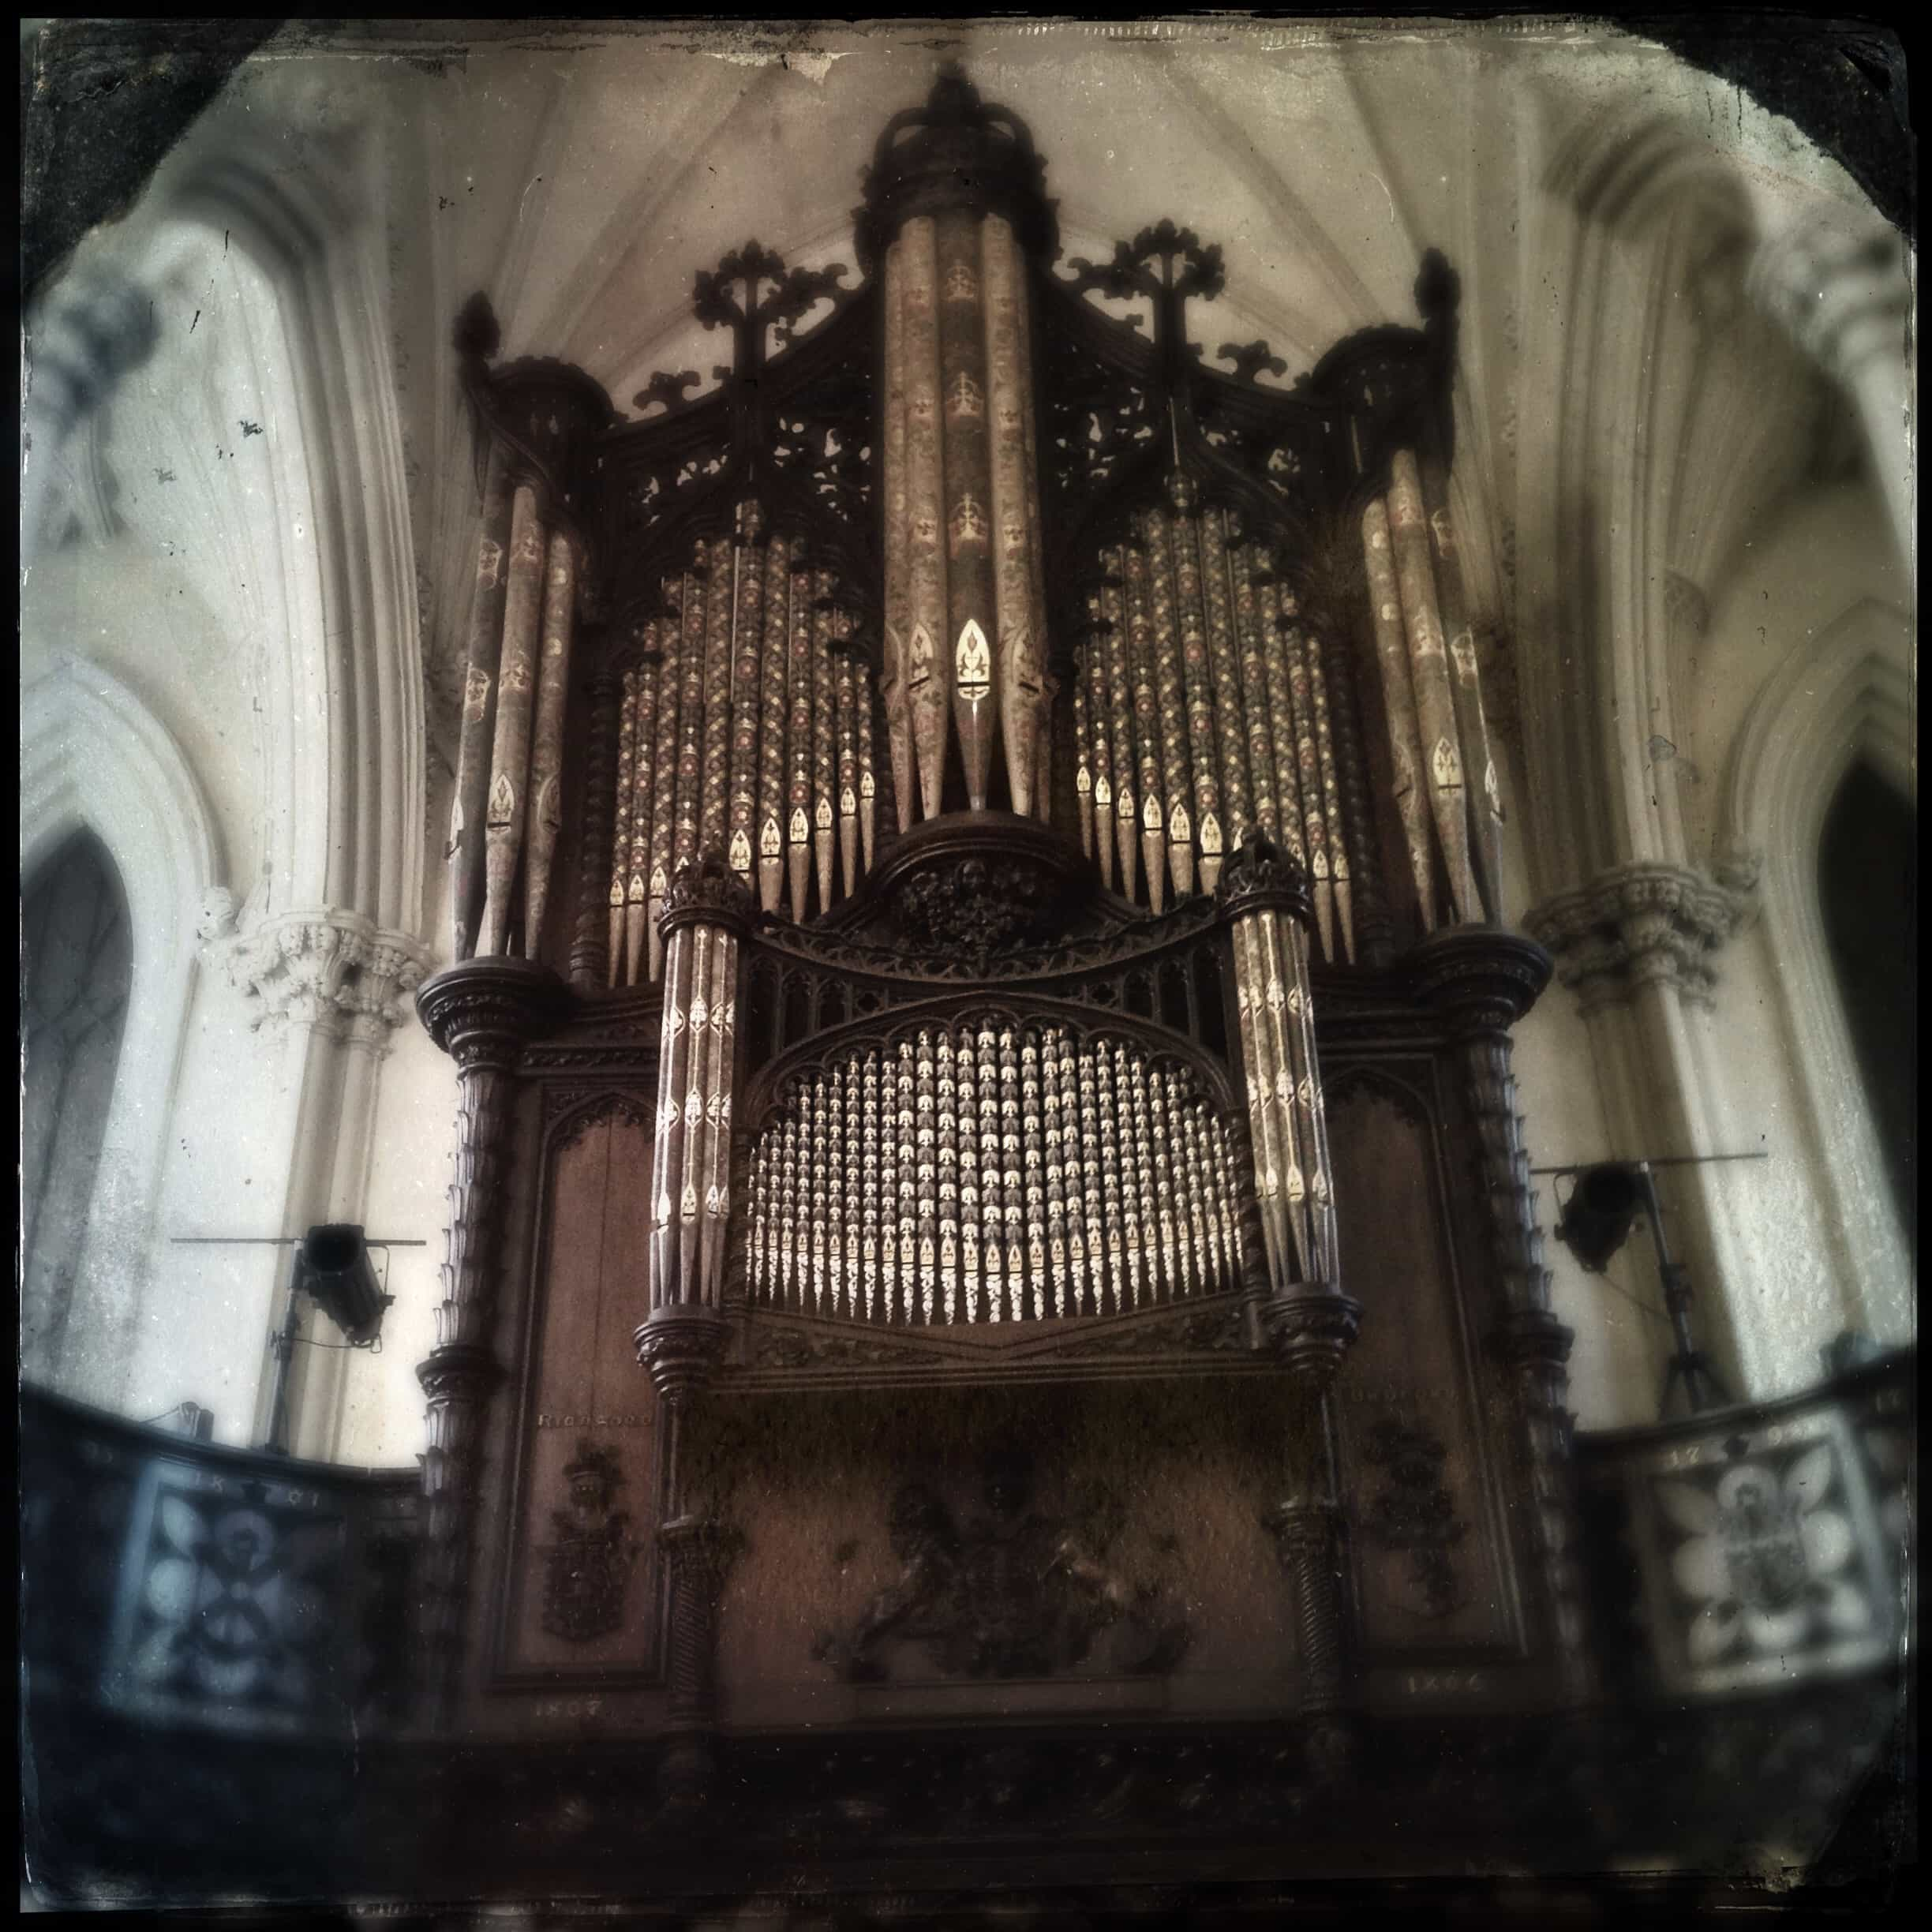 The organ in the Chapel Royal in Dublin Castle